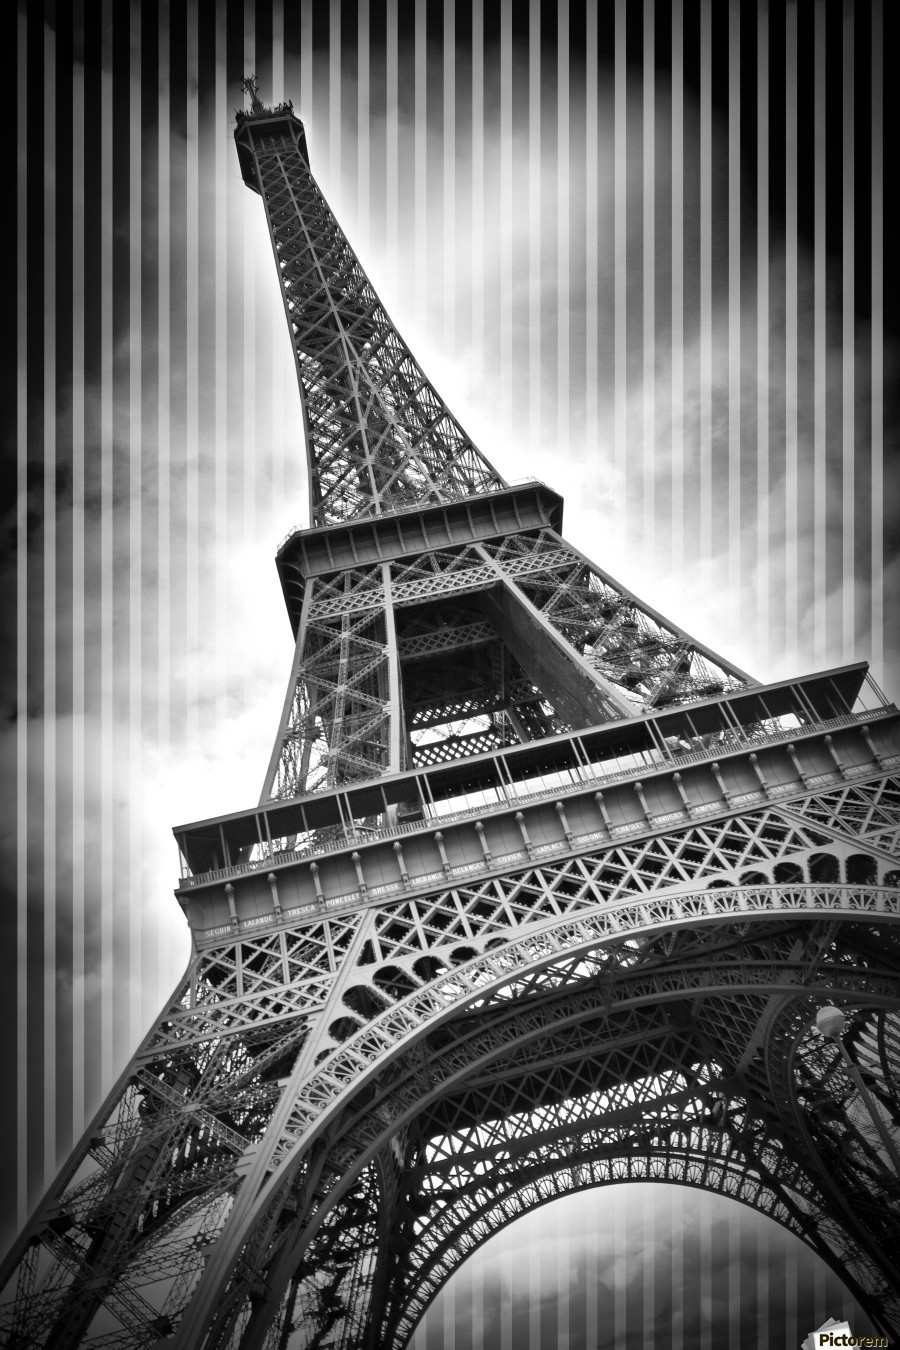 PARIS Eiffel Tower  , Melanie Viola , europe, france, paris, capital, champ de mars, eiffel tower, la tour eiffel, upright, vertical, architecture, building, attraction, city, landmark, sight, urban, famous, television tower, historic, black, white, black and white, monochrome, dynamic, decorative, tilted, classical, typical, abstract, modern, stripes, eiffeltower,